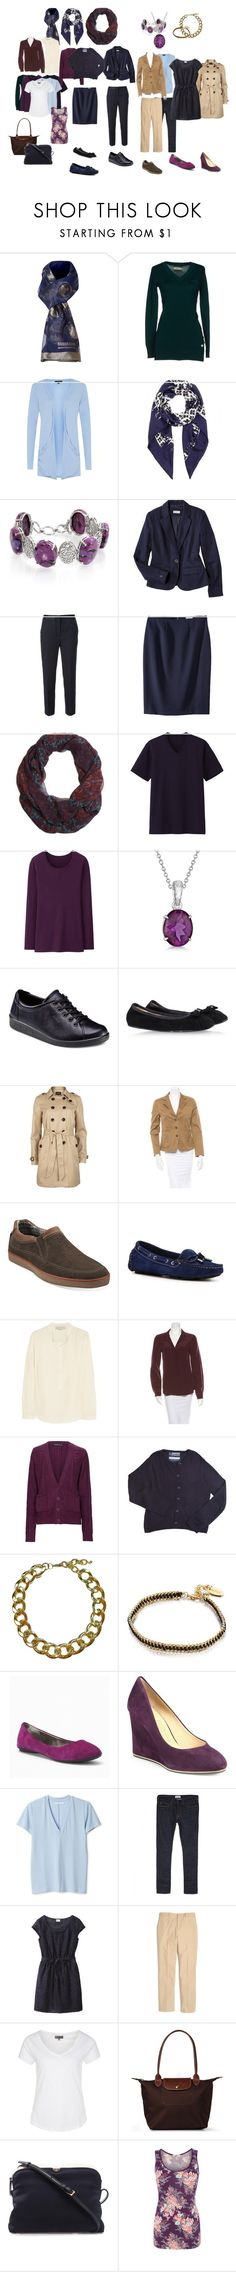 Navy and Plum for Fall by arielibra on Polyvore featuring мода, Diane Von Furstenberg, Zalando, Oasis, STELLA McCARTNEY, Sugarhill Boutique, Uniqlo, MTWTFSS Collection, Timeout and Vila Milano